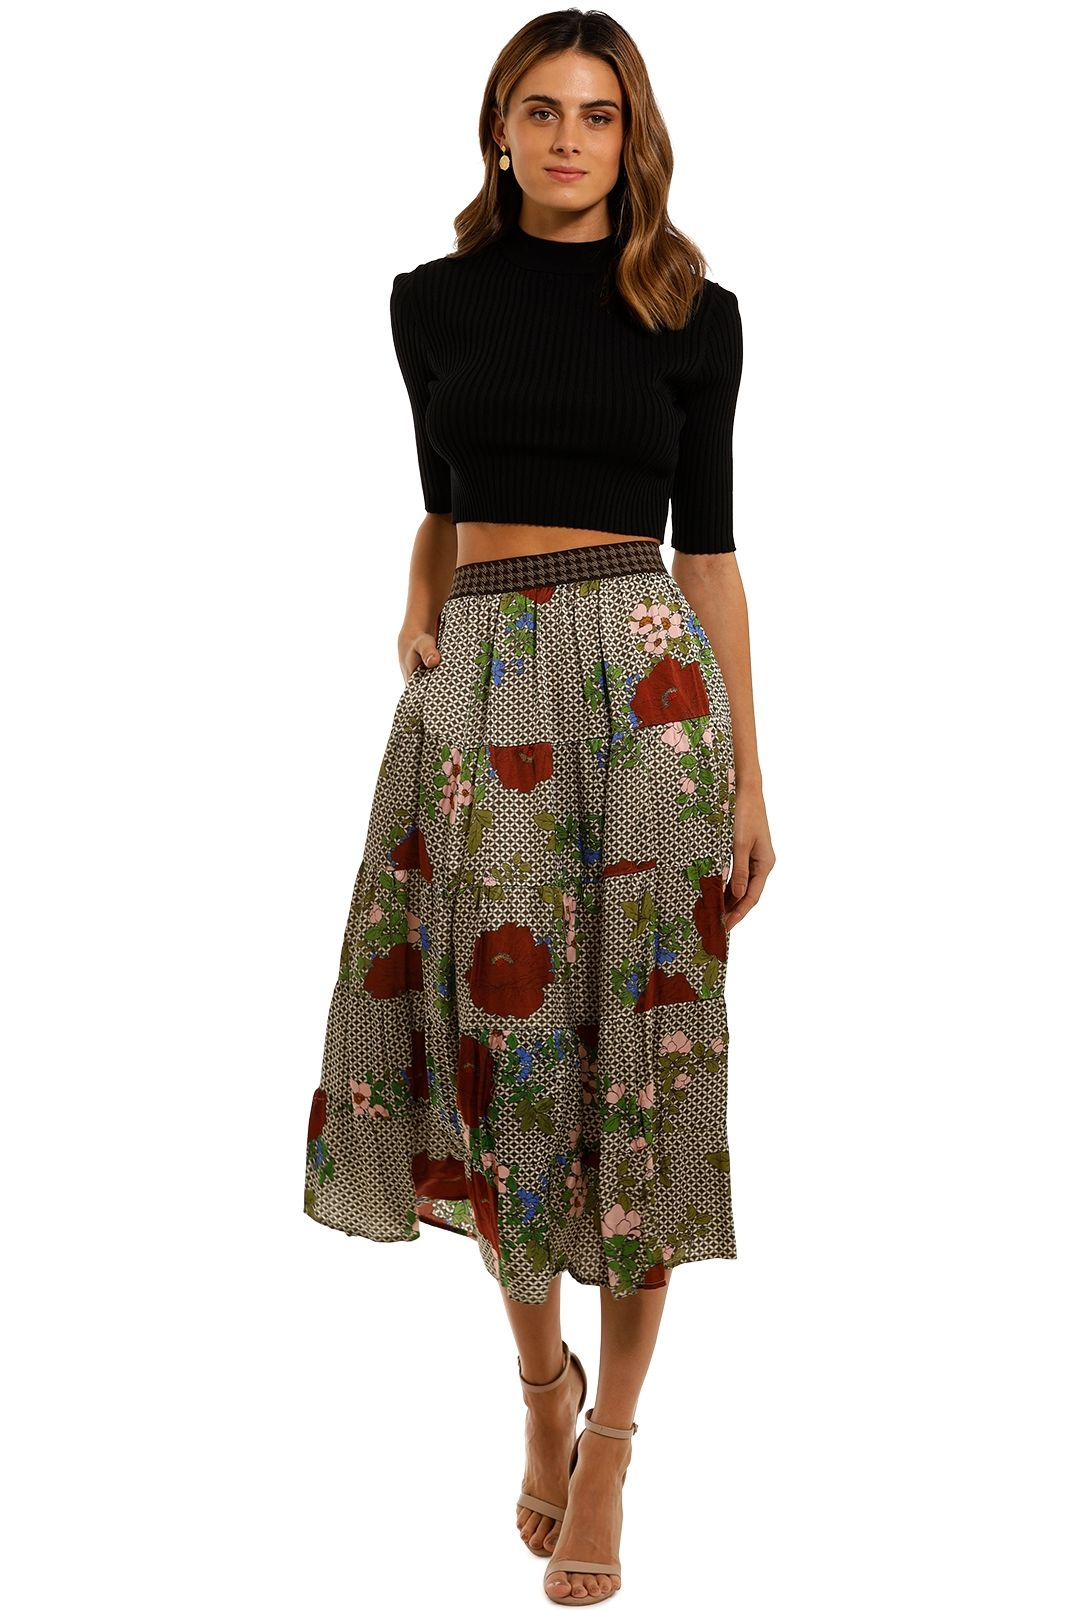 Curate by Trelise Cooper The Last Layer Skirt midi